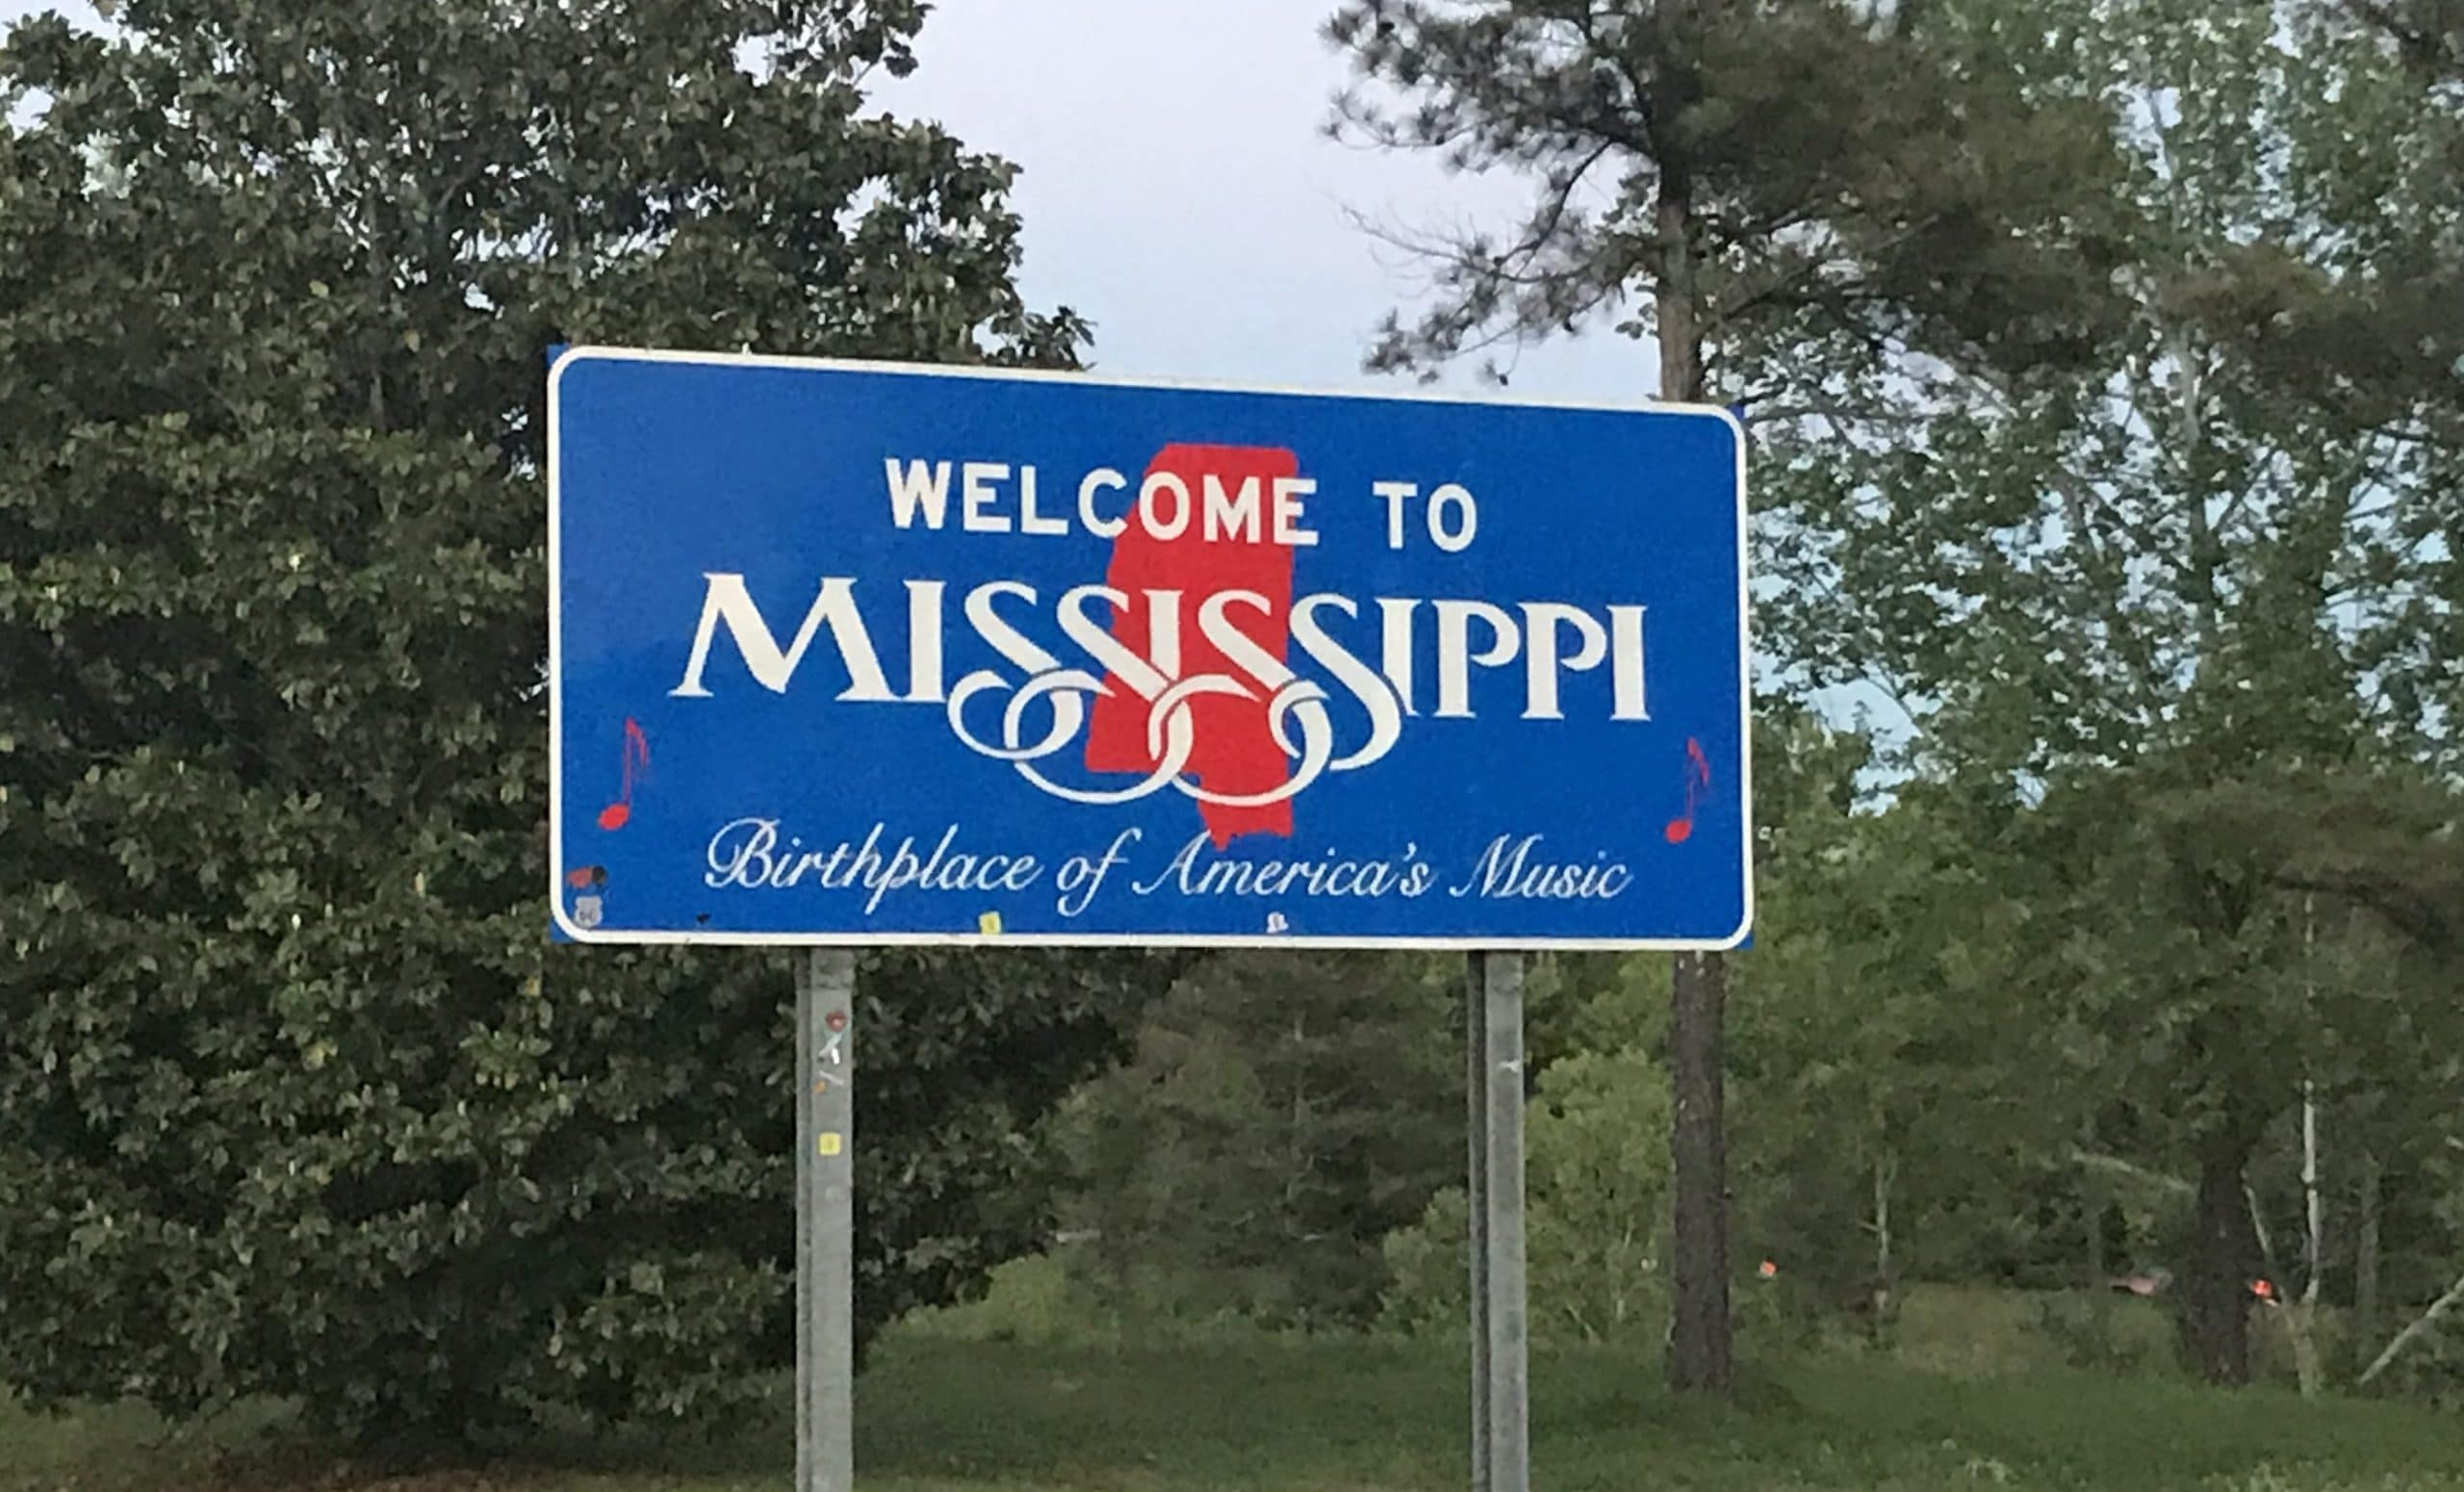 Mississippi Christians Respond After Governor Signs Law Lifting Prohibition-Era Alcohol Ban